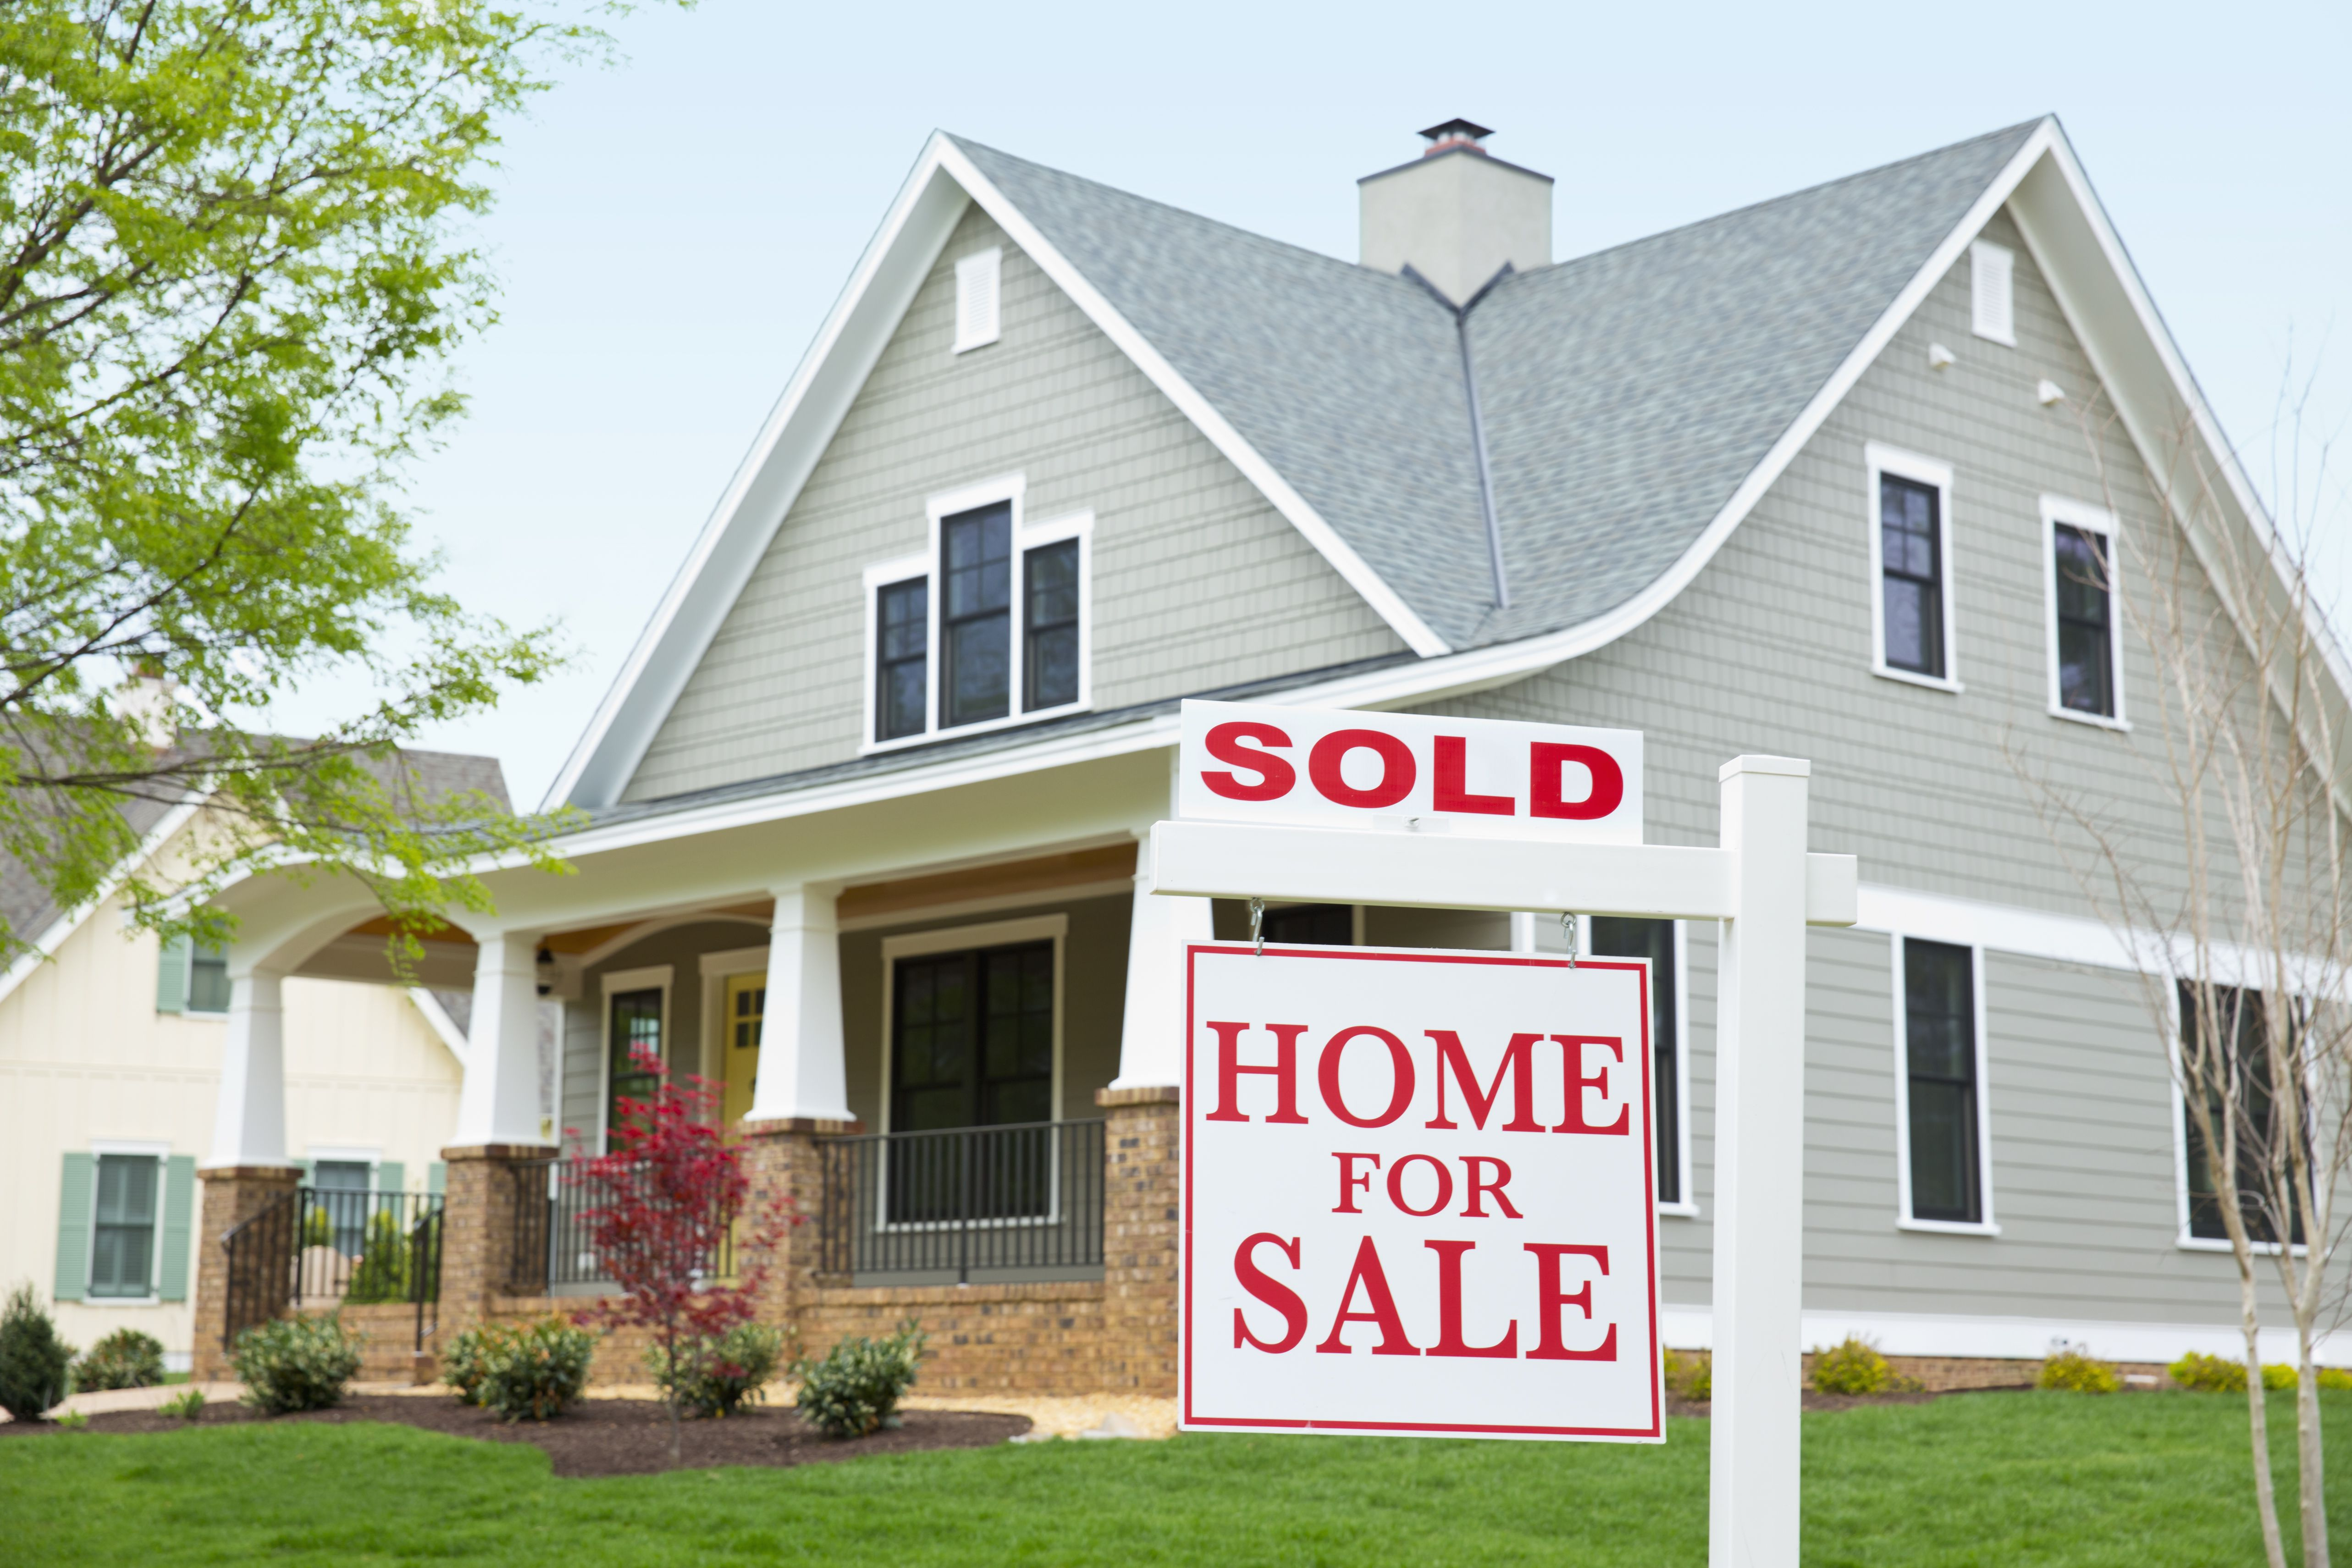 Let Todd P Smith, REALTOR at ProbateAgentTexas.com help you off-load probate property assets